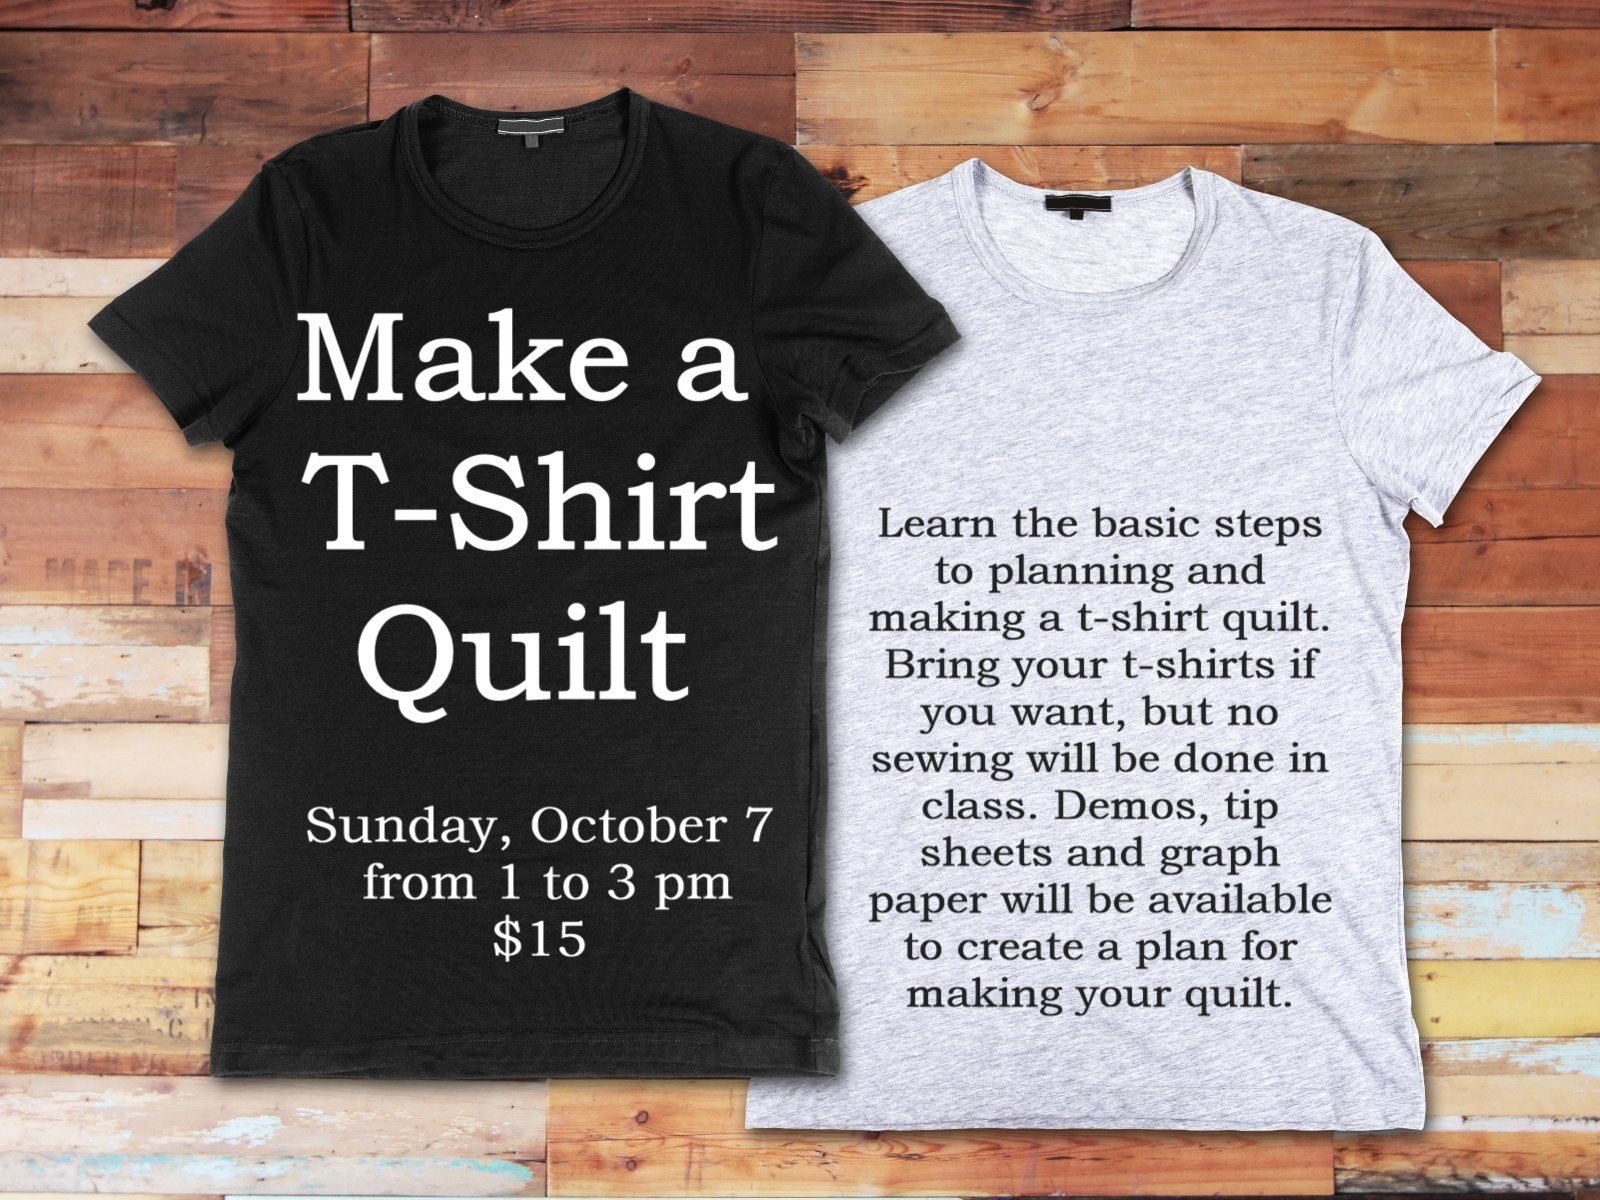 How To Make A Tshirt Quilt Without A Sewing Machine